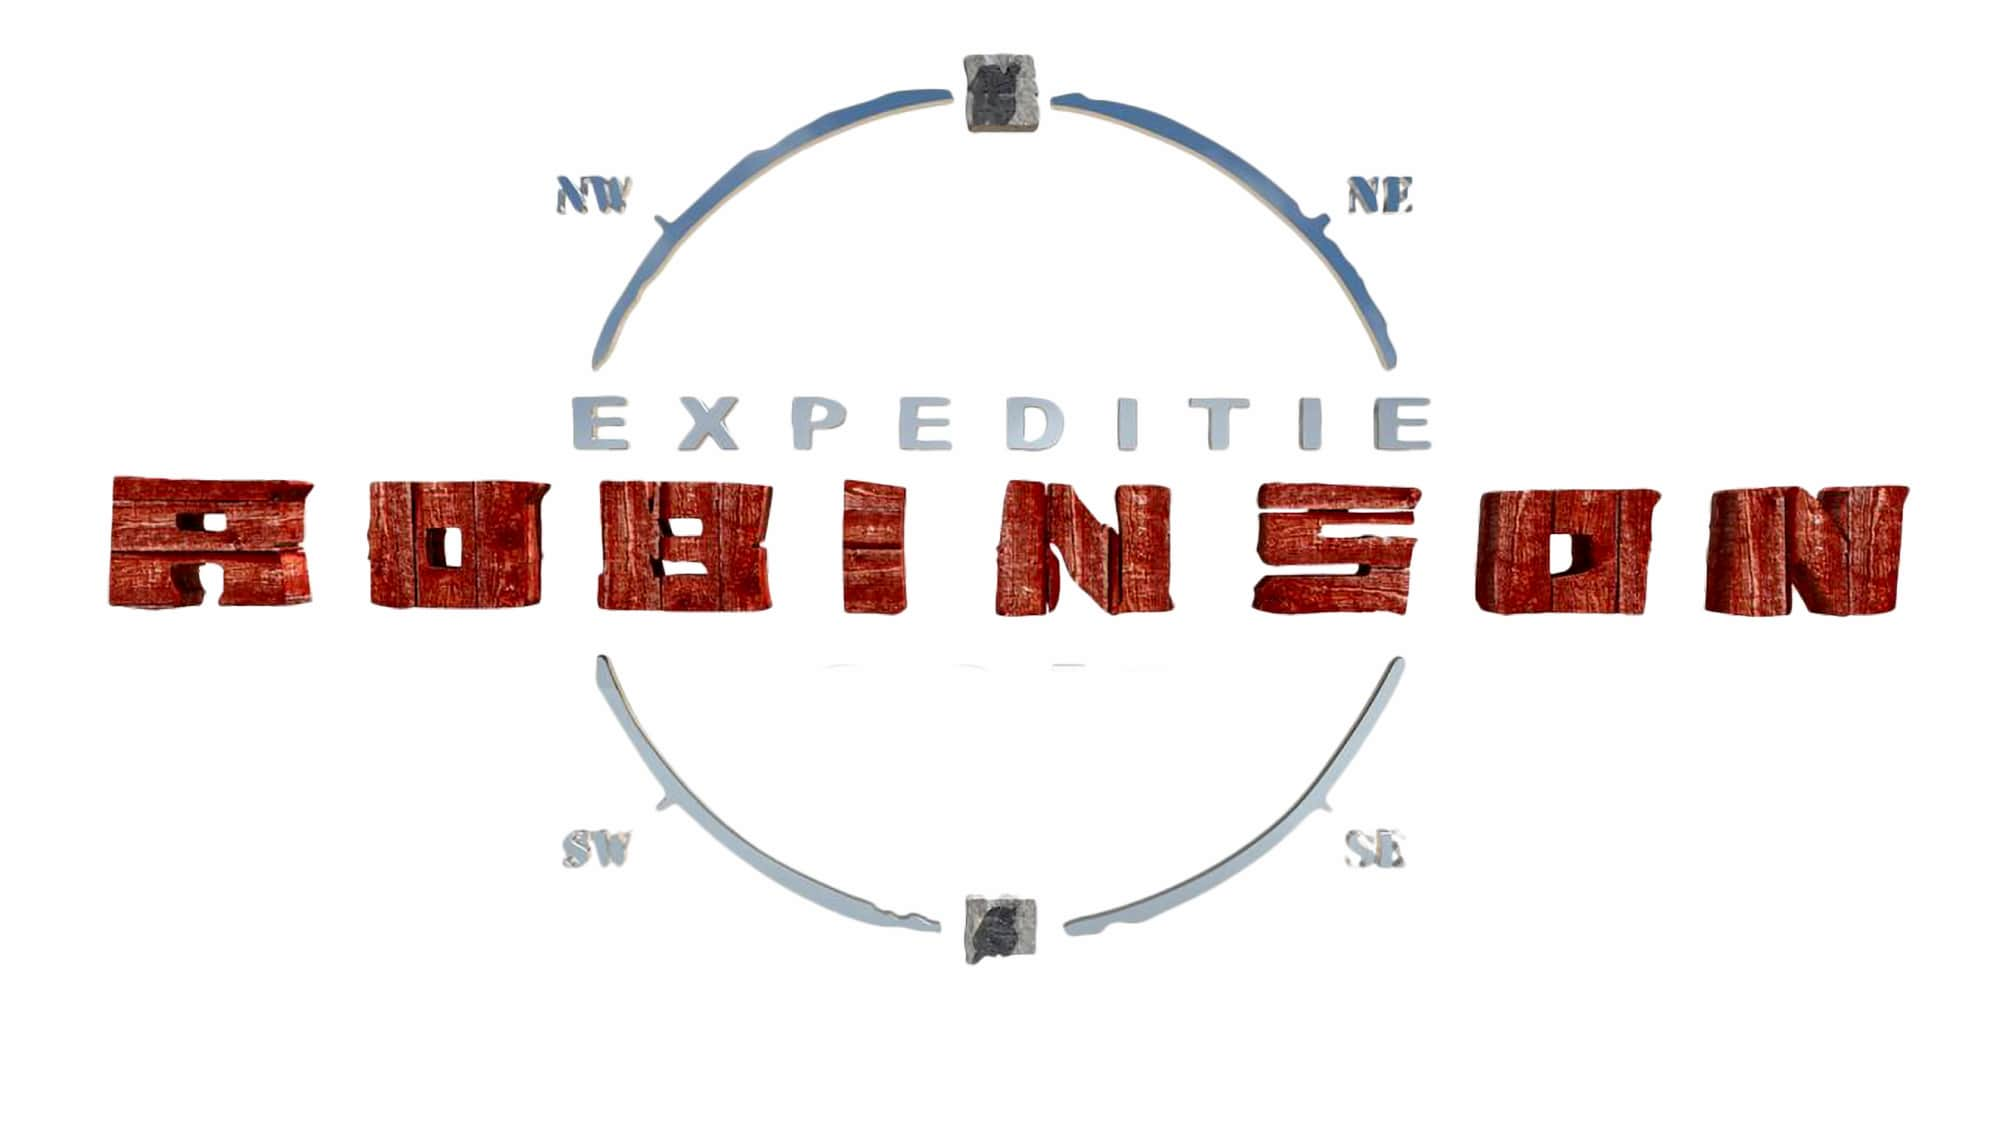 image from Expedition Robinson